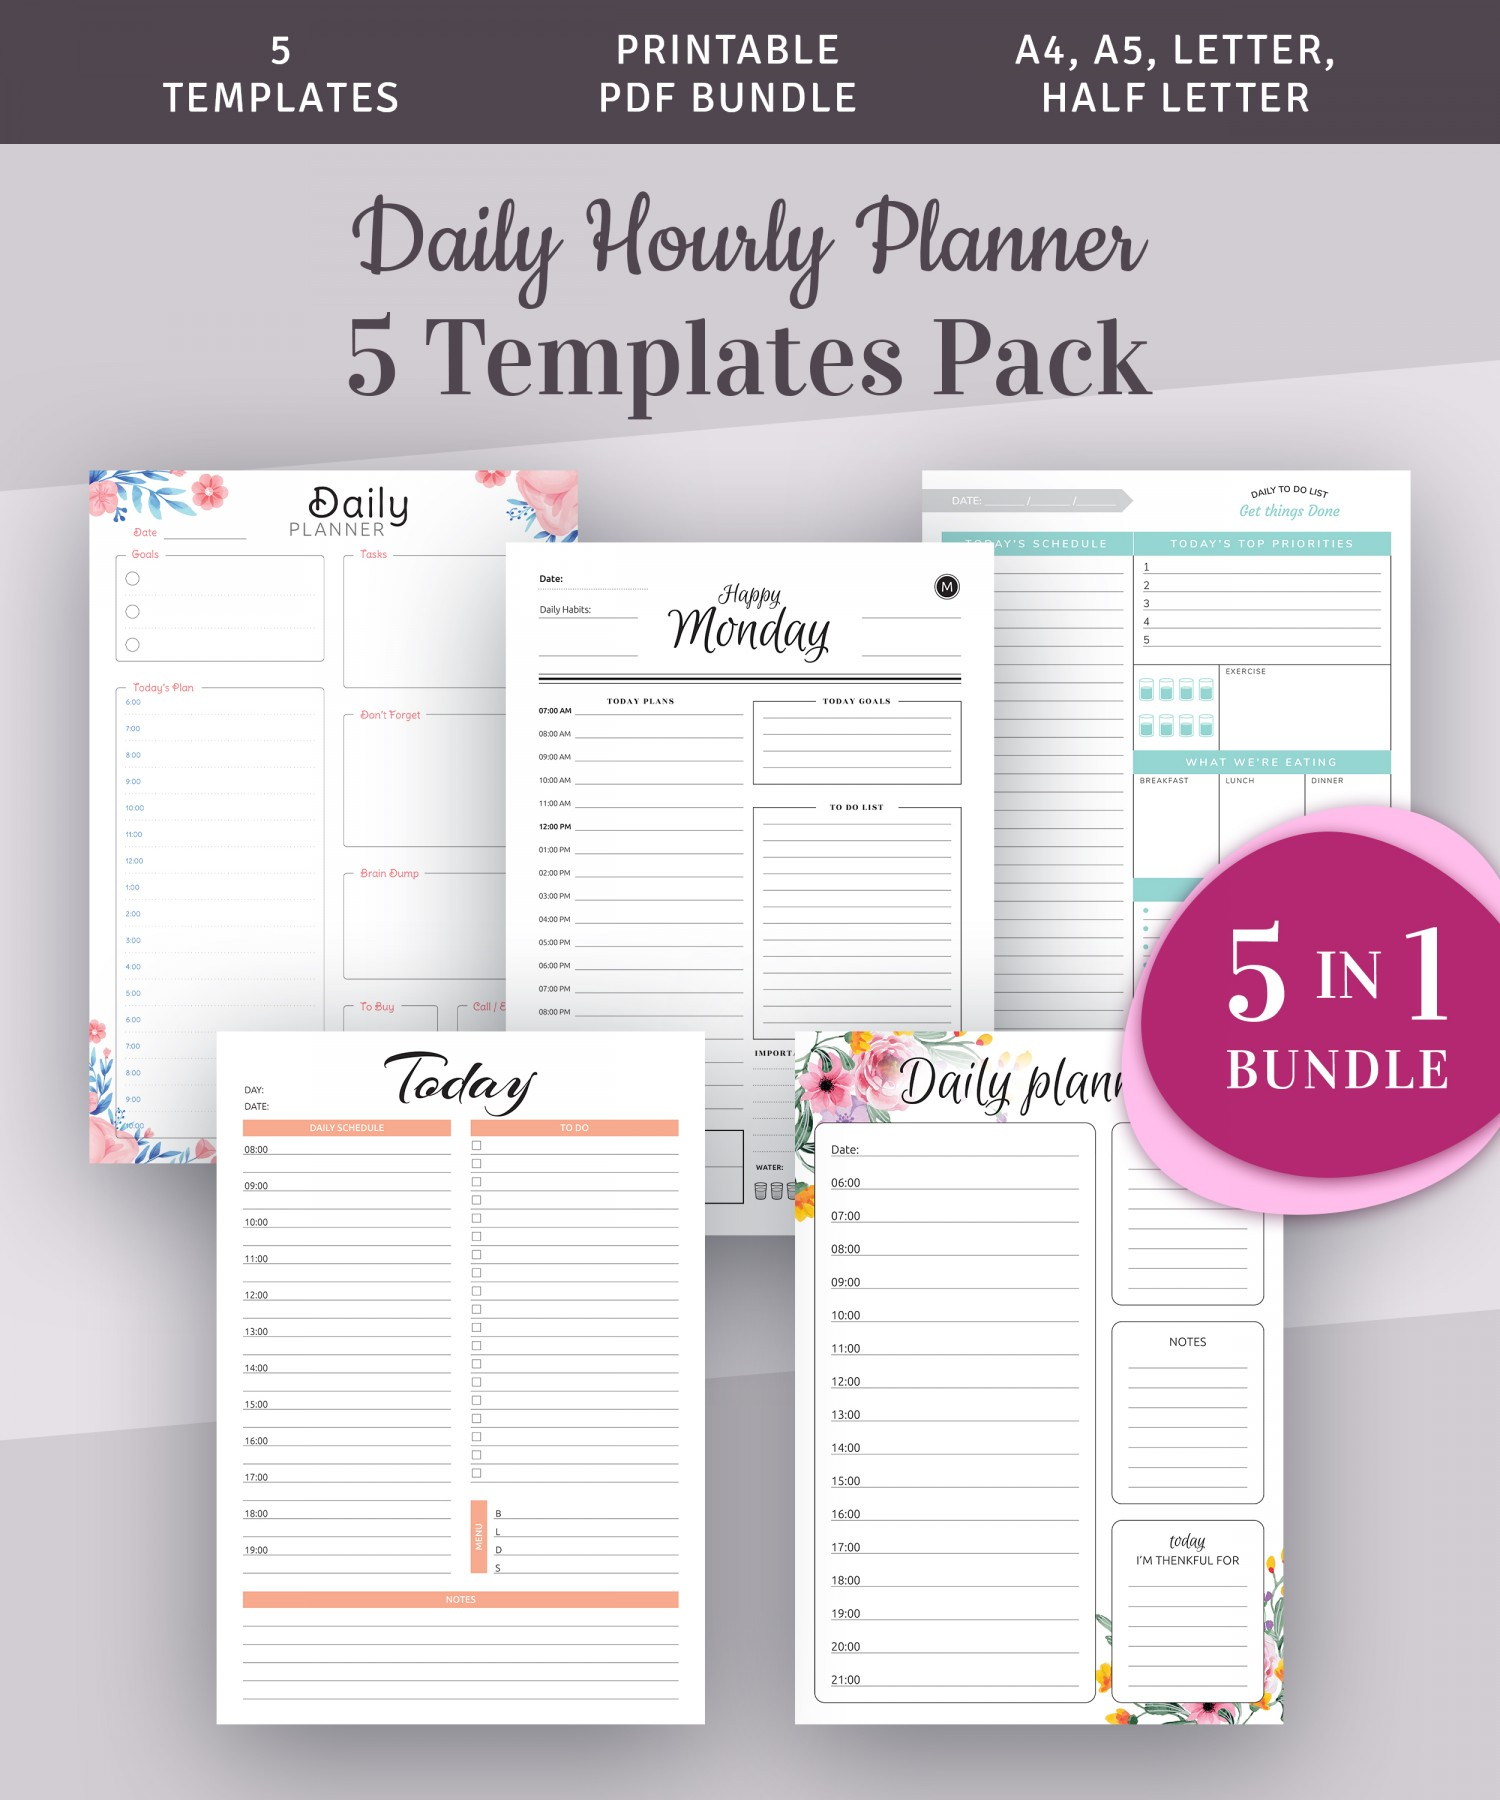 Free Printable Daily Planner Templates 5 in 1 Bundle PDF